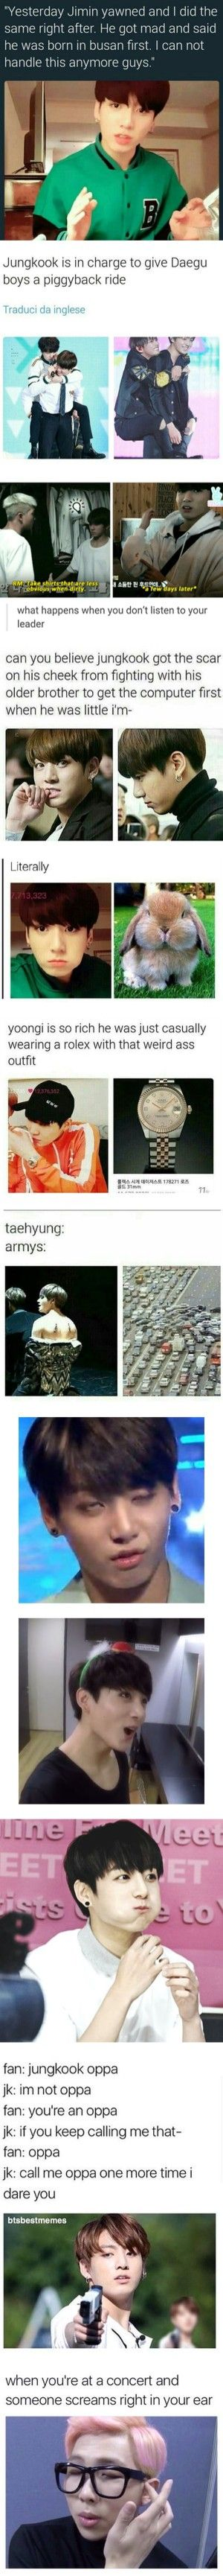 memes by jungkookshi on Polyvore featuring bts, people, women's fashion, home, home decor, meme, holiday decorations, christmas holiday decor, christmas home decor and christmas holiday decorations